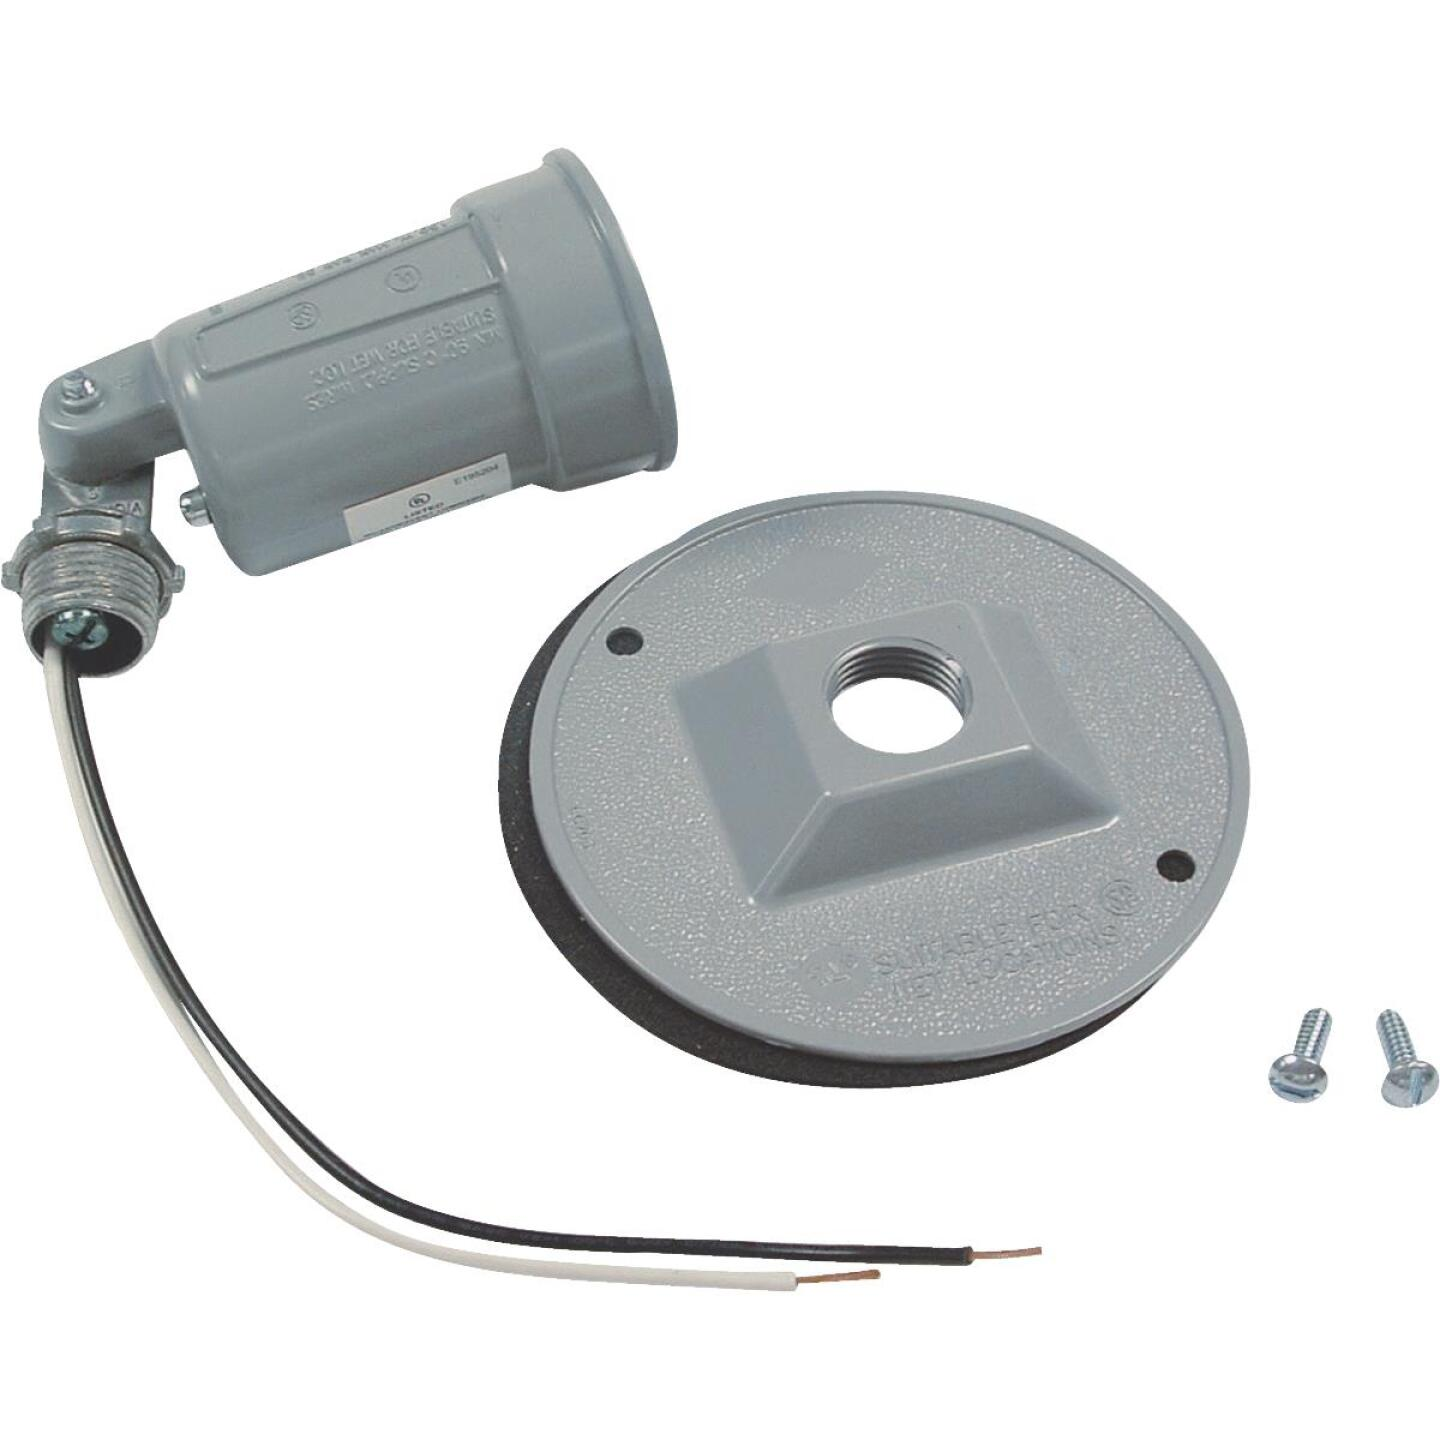 Bell 150W Aluminum Round Single Gray Weatherproof Outdoor Lampholder with Cover, Carded Image 3